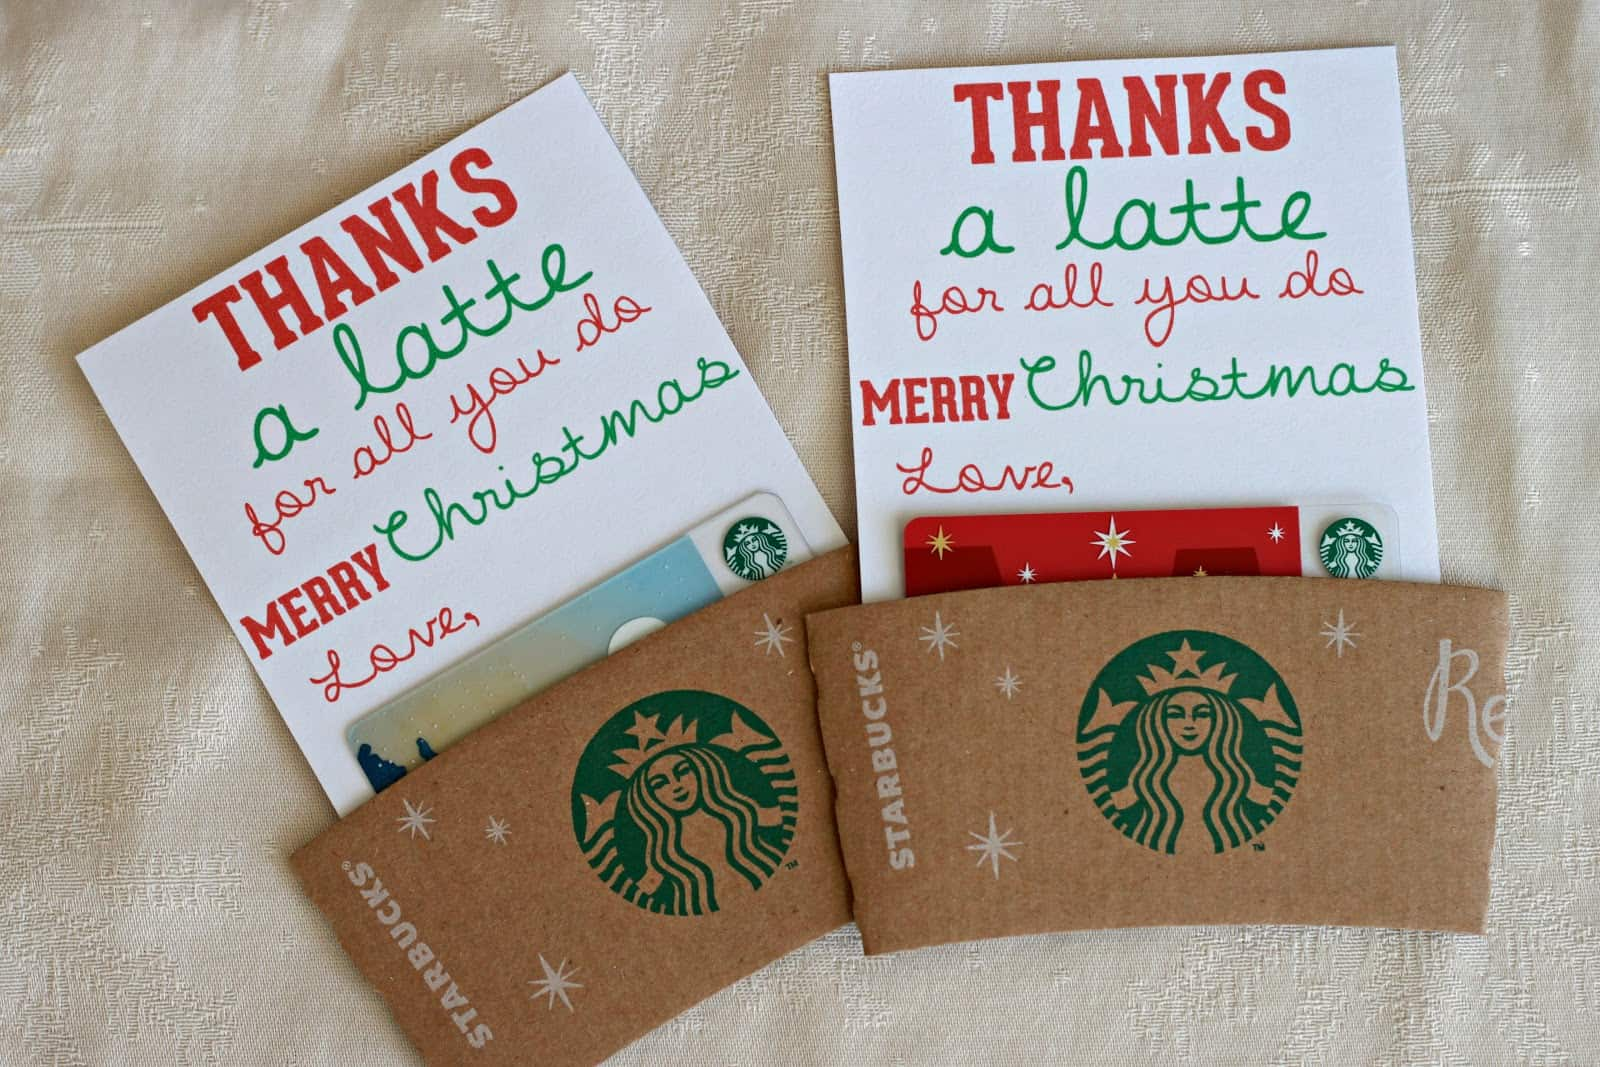 Thanks a latte coffee gift & DIY Teacheru0027s Gifts for Christmas